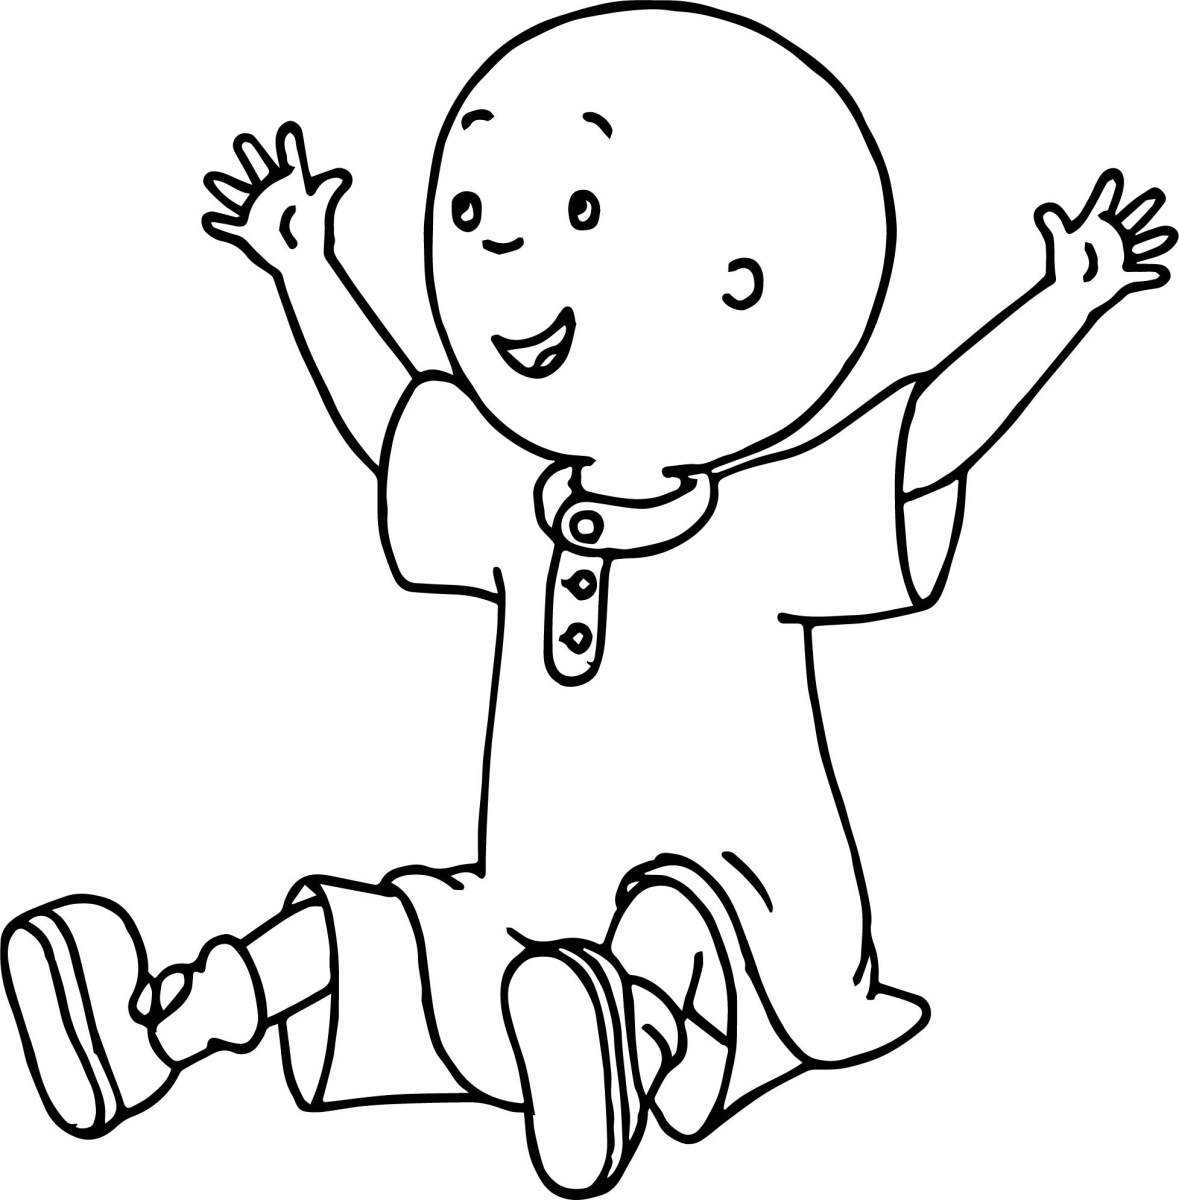 Caillou Coloring Pages   Coloringnori - Coloring Pages for ...